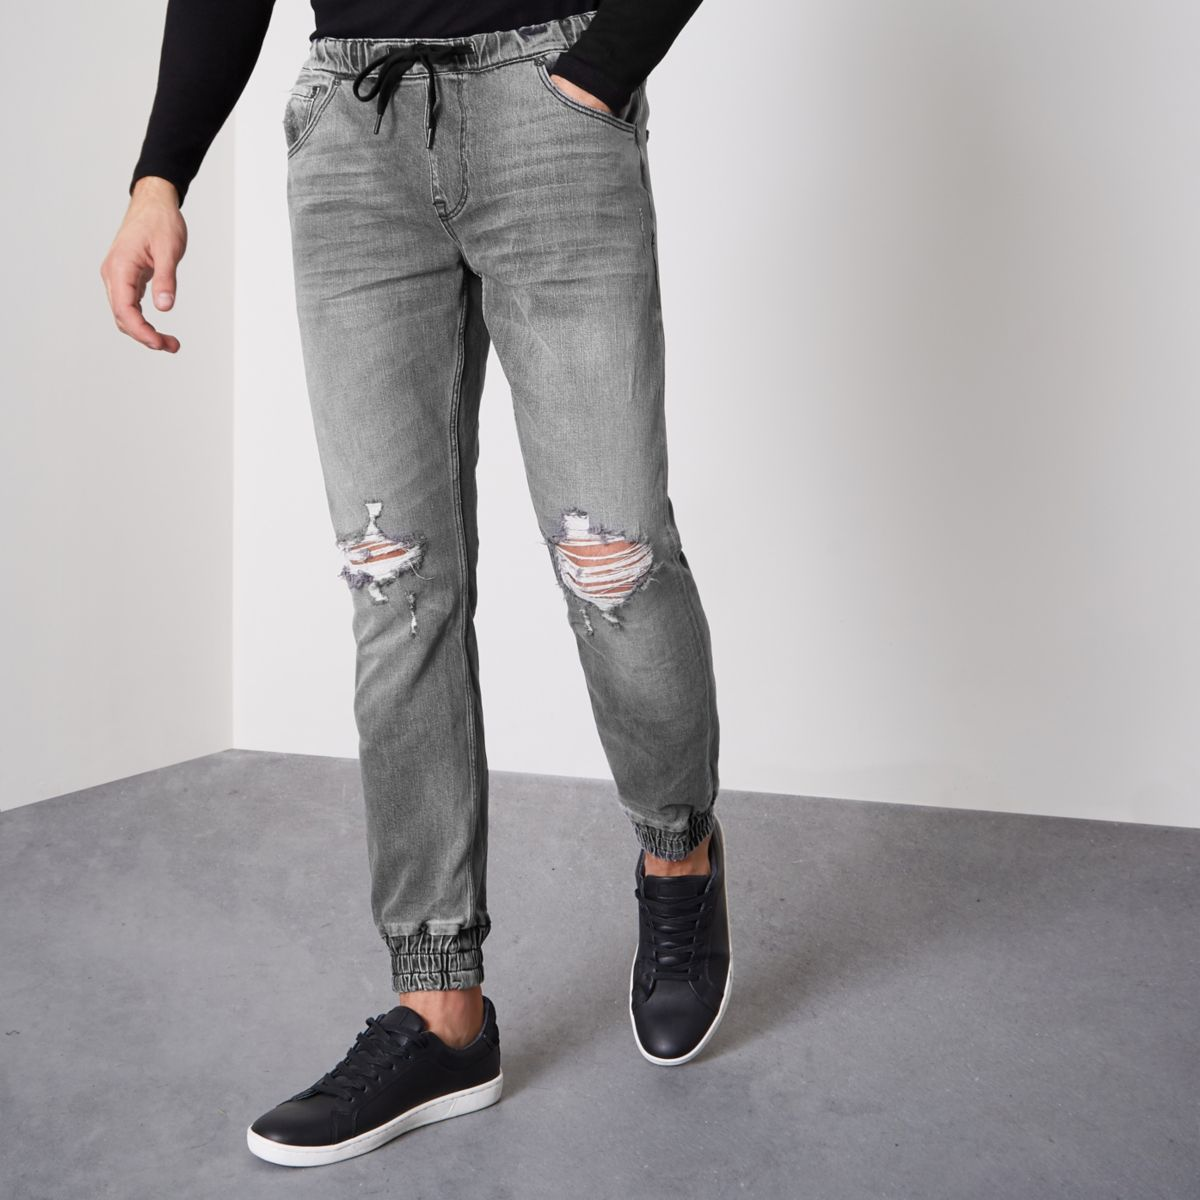 Cargo or moto jogger pants in a twill fabric lend a dressier feel to casual outfits. Pair these men's joggers with a crisp button-down and leather jacket for Casual Fridays or date nights. Complete this look with oxfords or loafers for a refined finish.